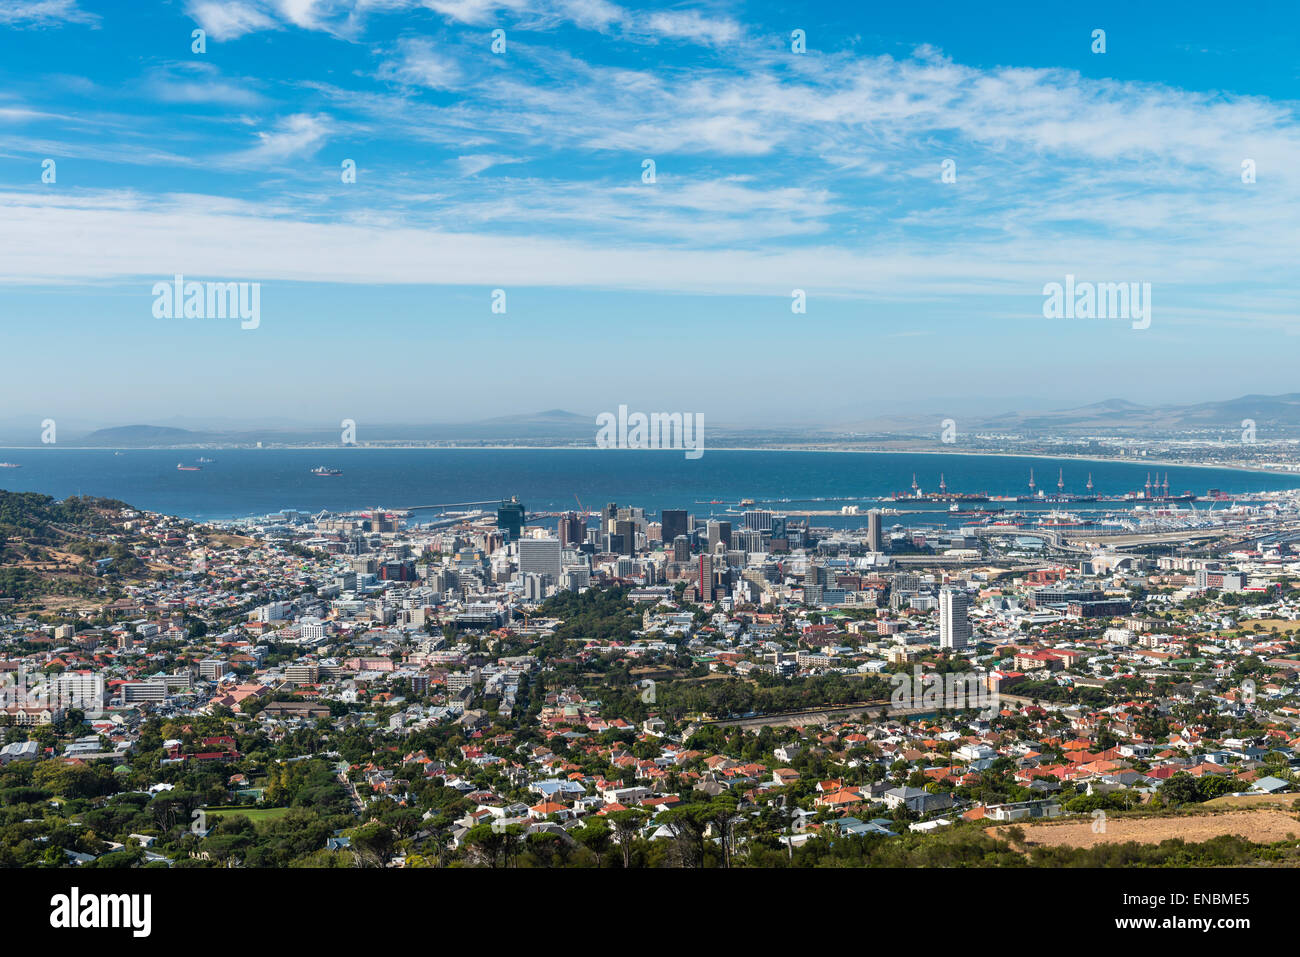 Cape Town city centre (view from the Table Mountain) - Stock Image